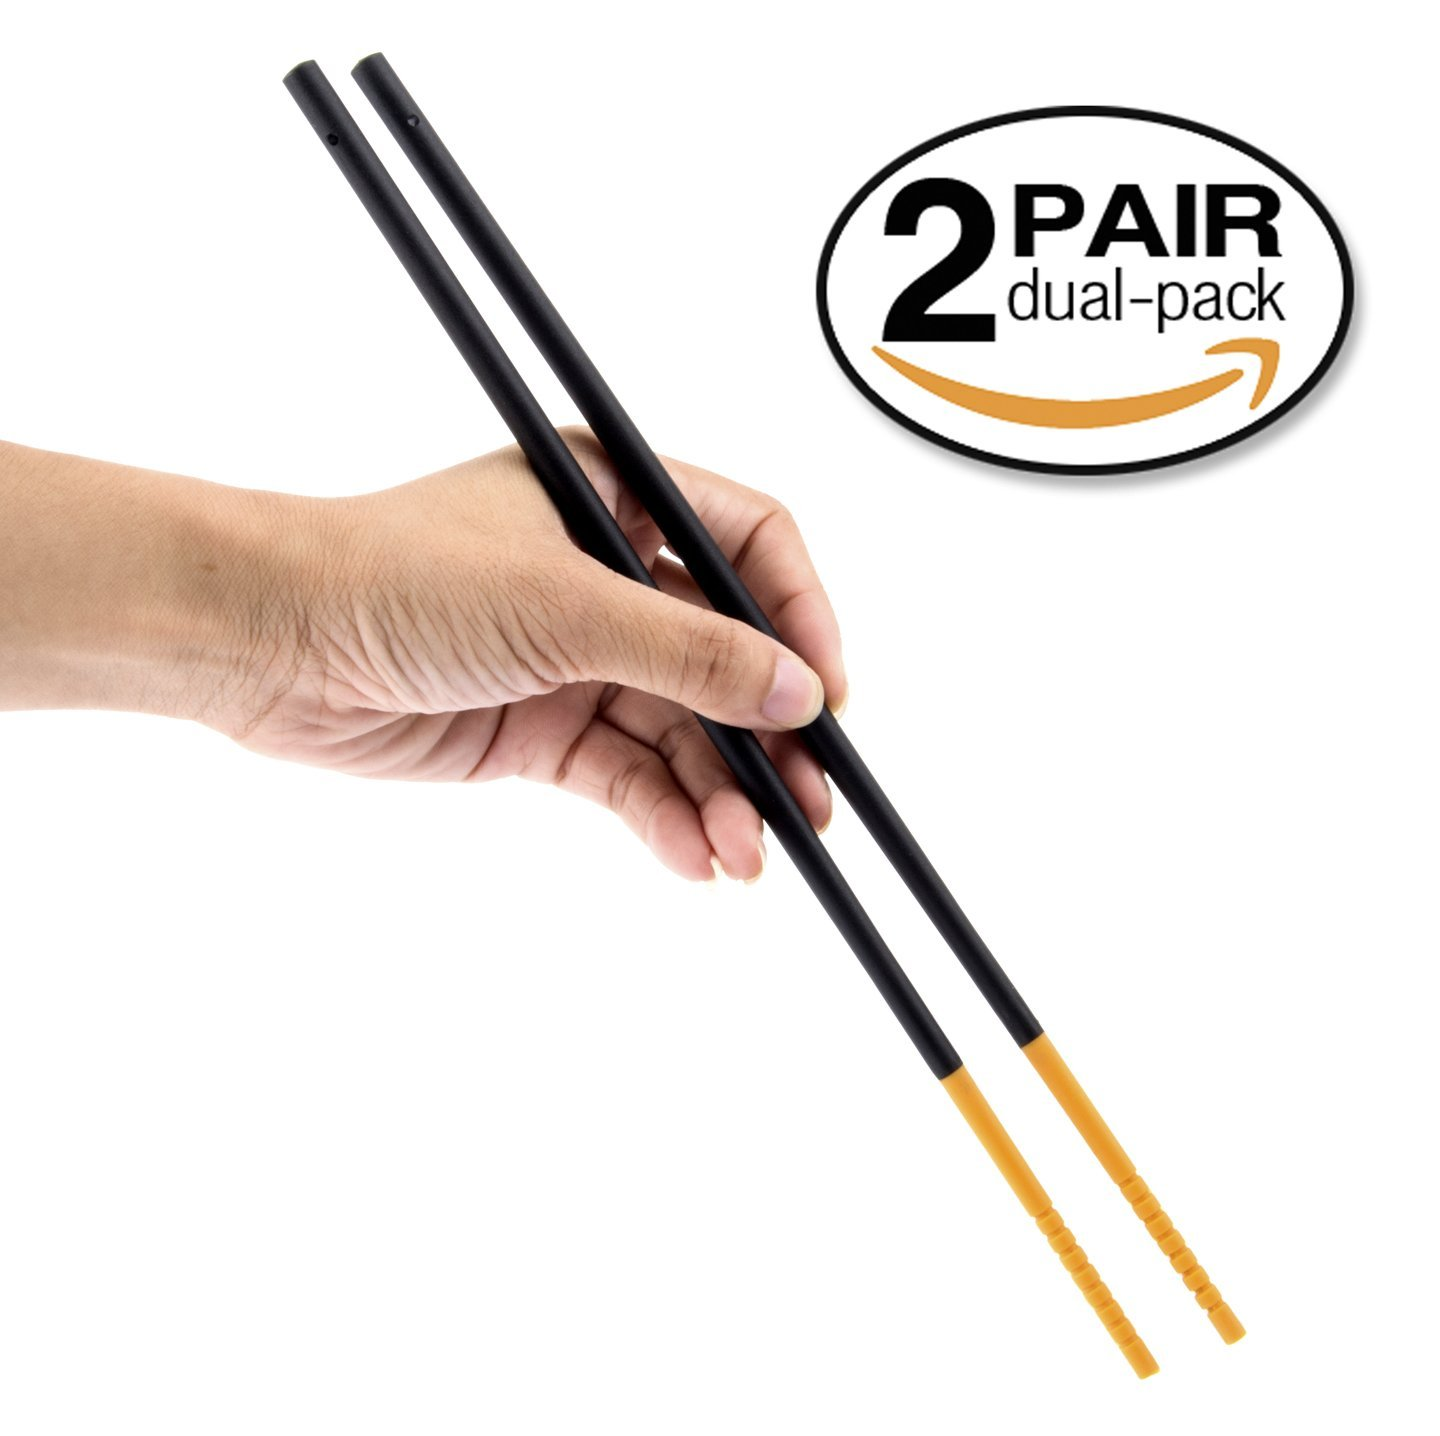 ''Gripsticks'' Cooking Chopsticks - Enhanced Grip Silicone Tips, 2-Pair, 30cm (12 inch long - 4'' More Than Regular Chopsticks), Dishwasher Safe, Black